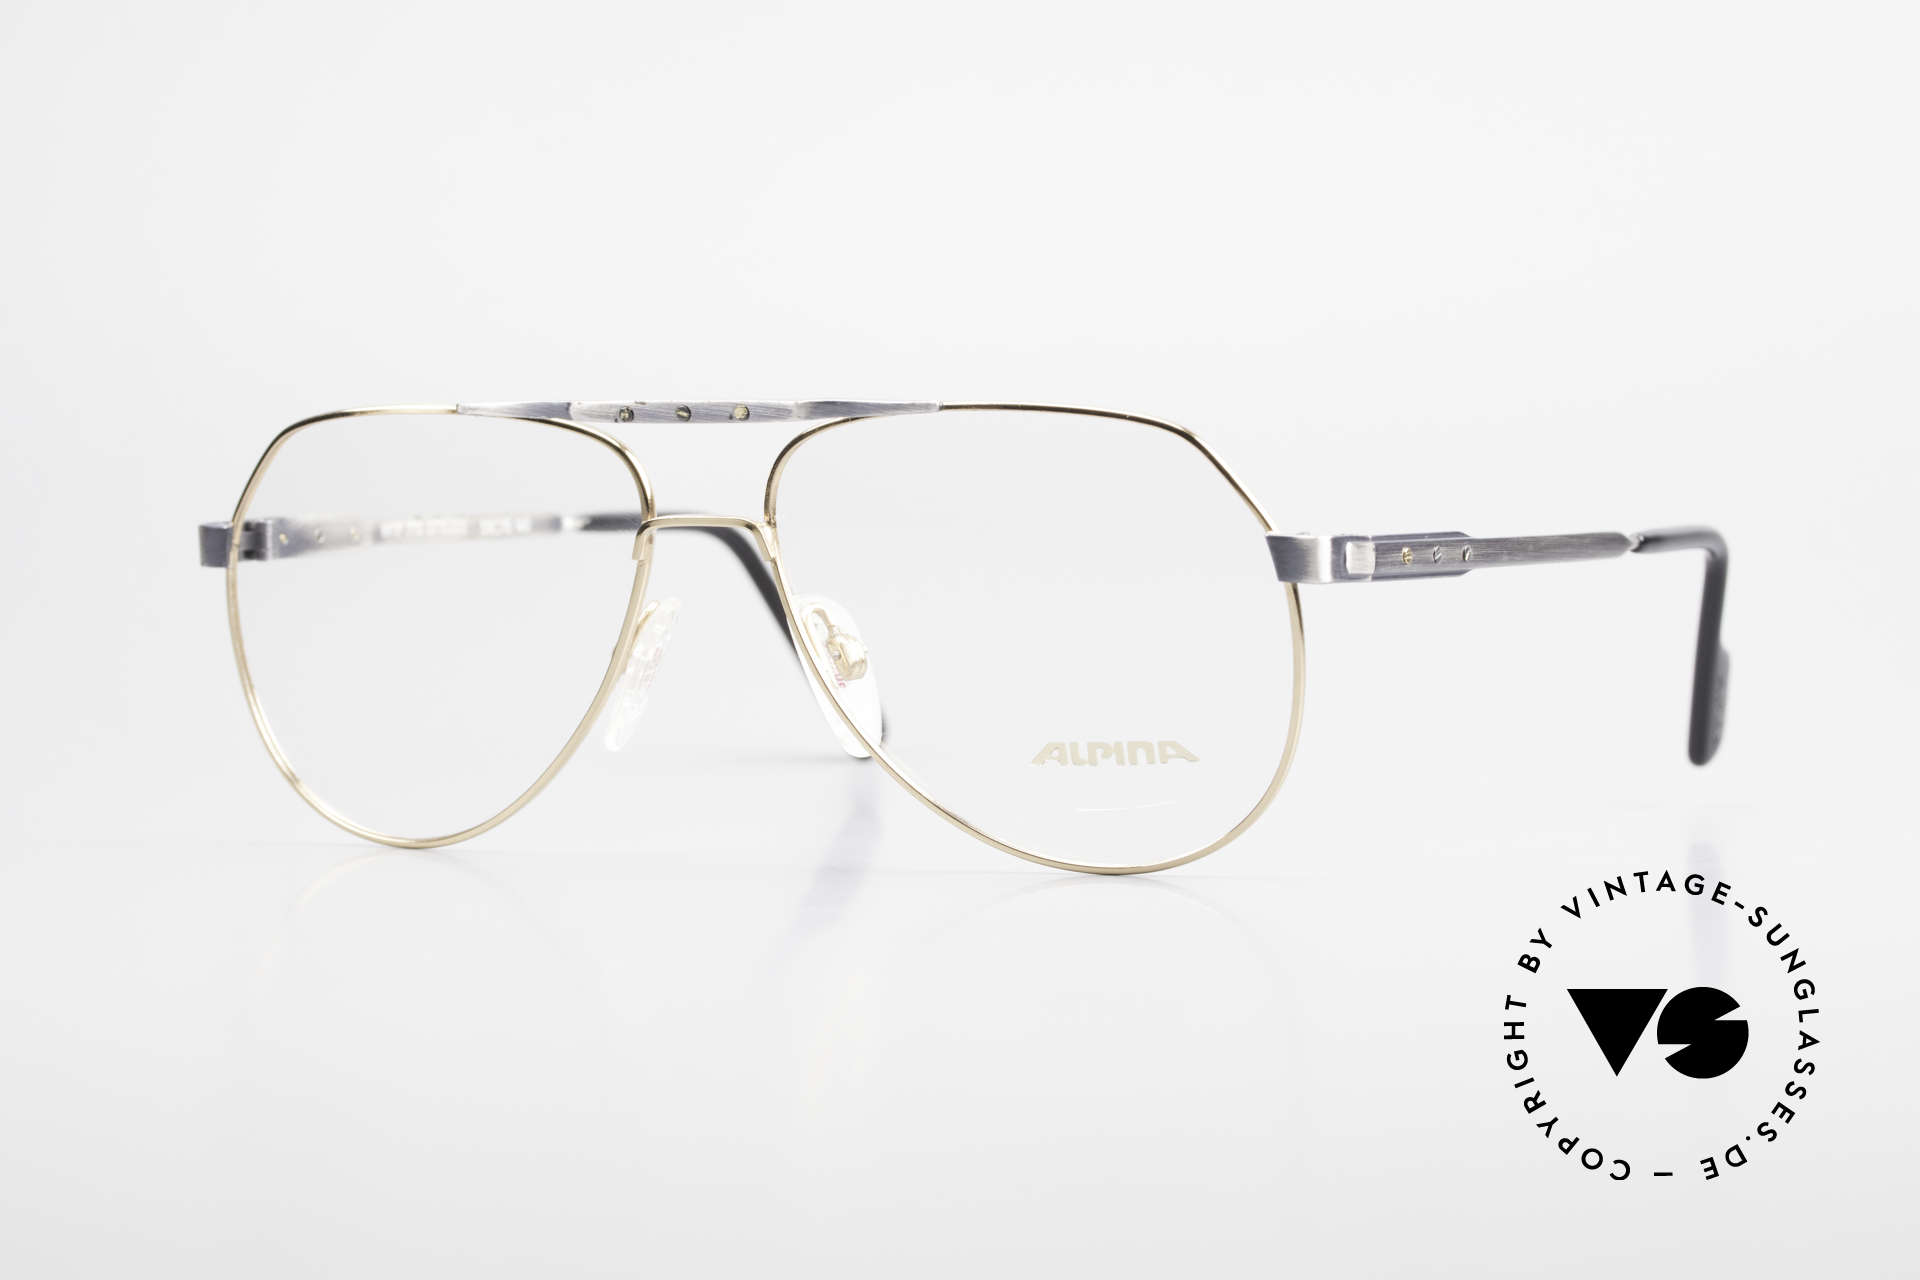 Alpina M1F770 Vintage Glasses Aviator Style, Alpina vintage glasses M1F770 in size 59/15, 140, Made for Men